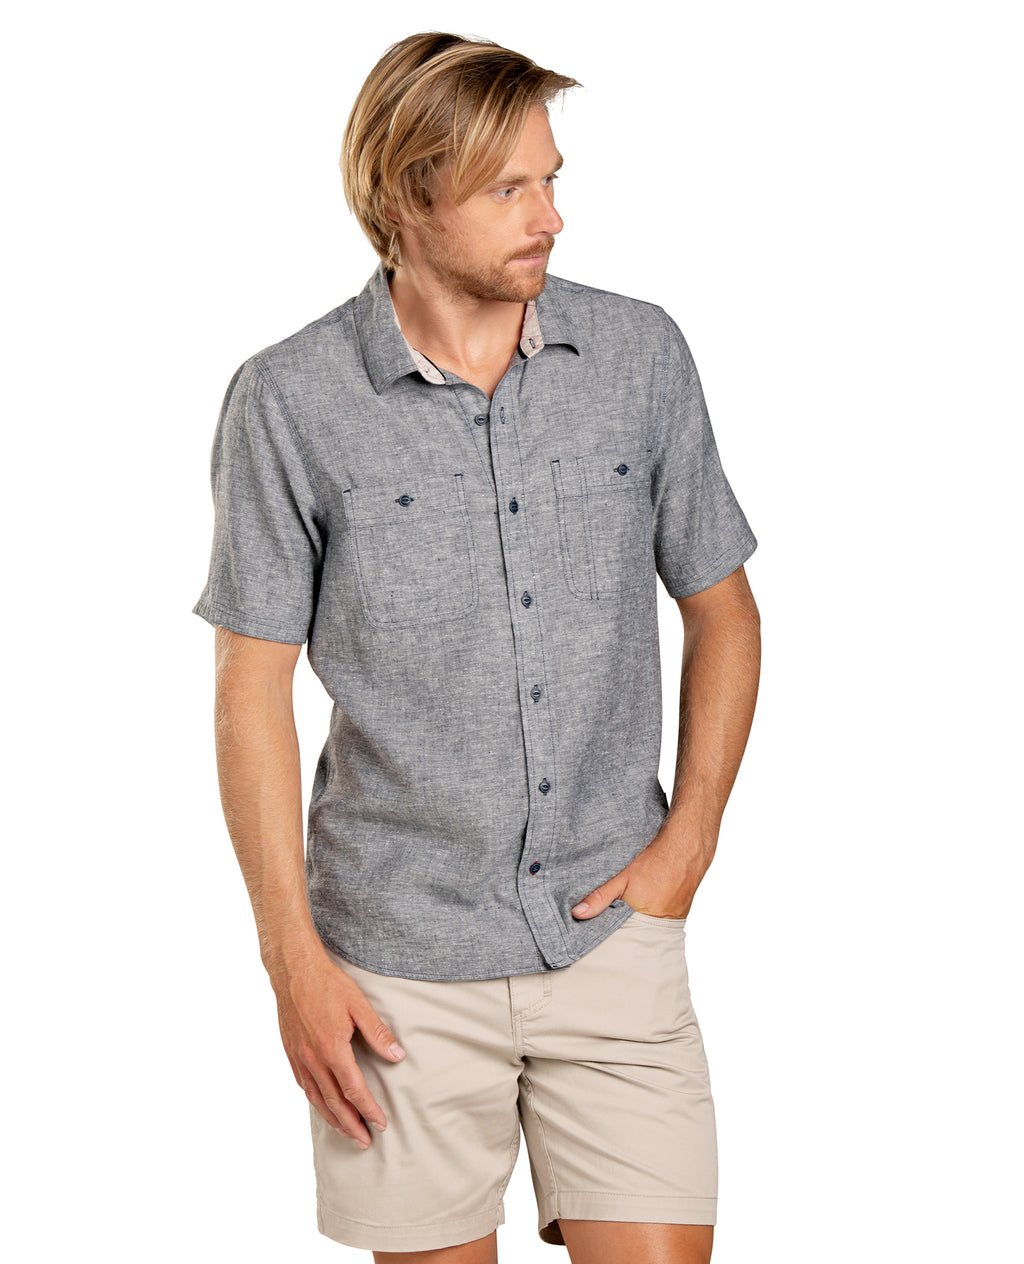 Grey print shirt with collar neck and two pockets at the front.